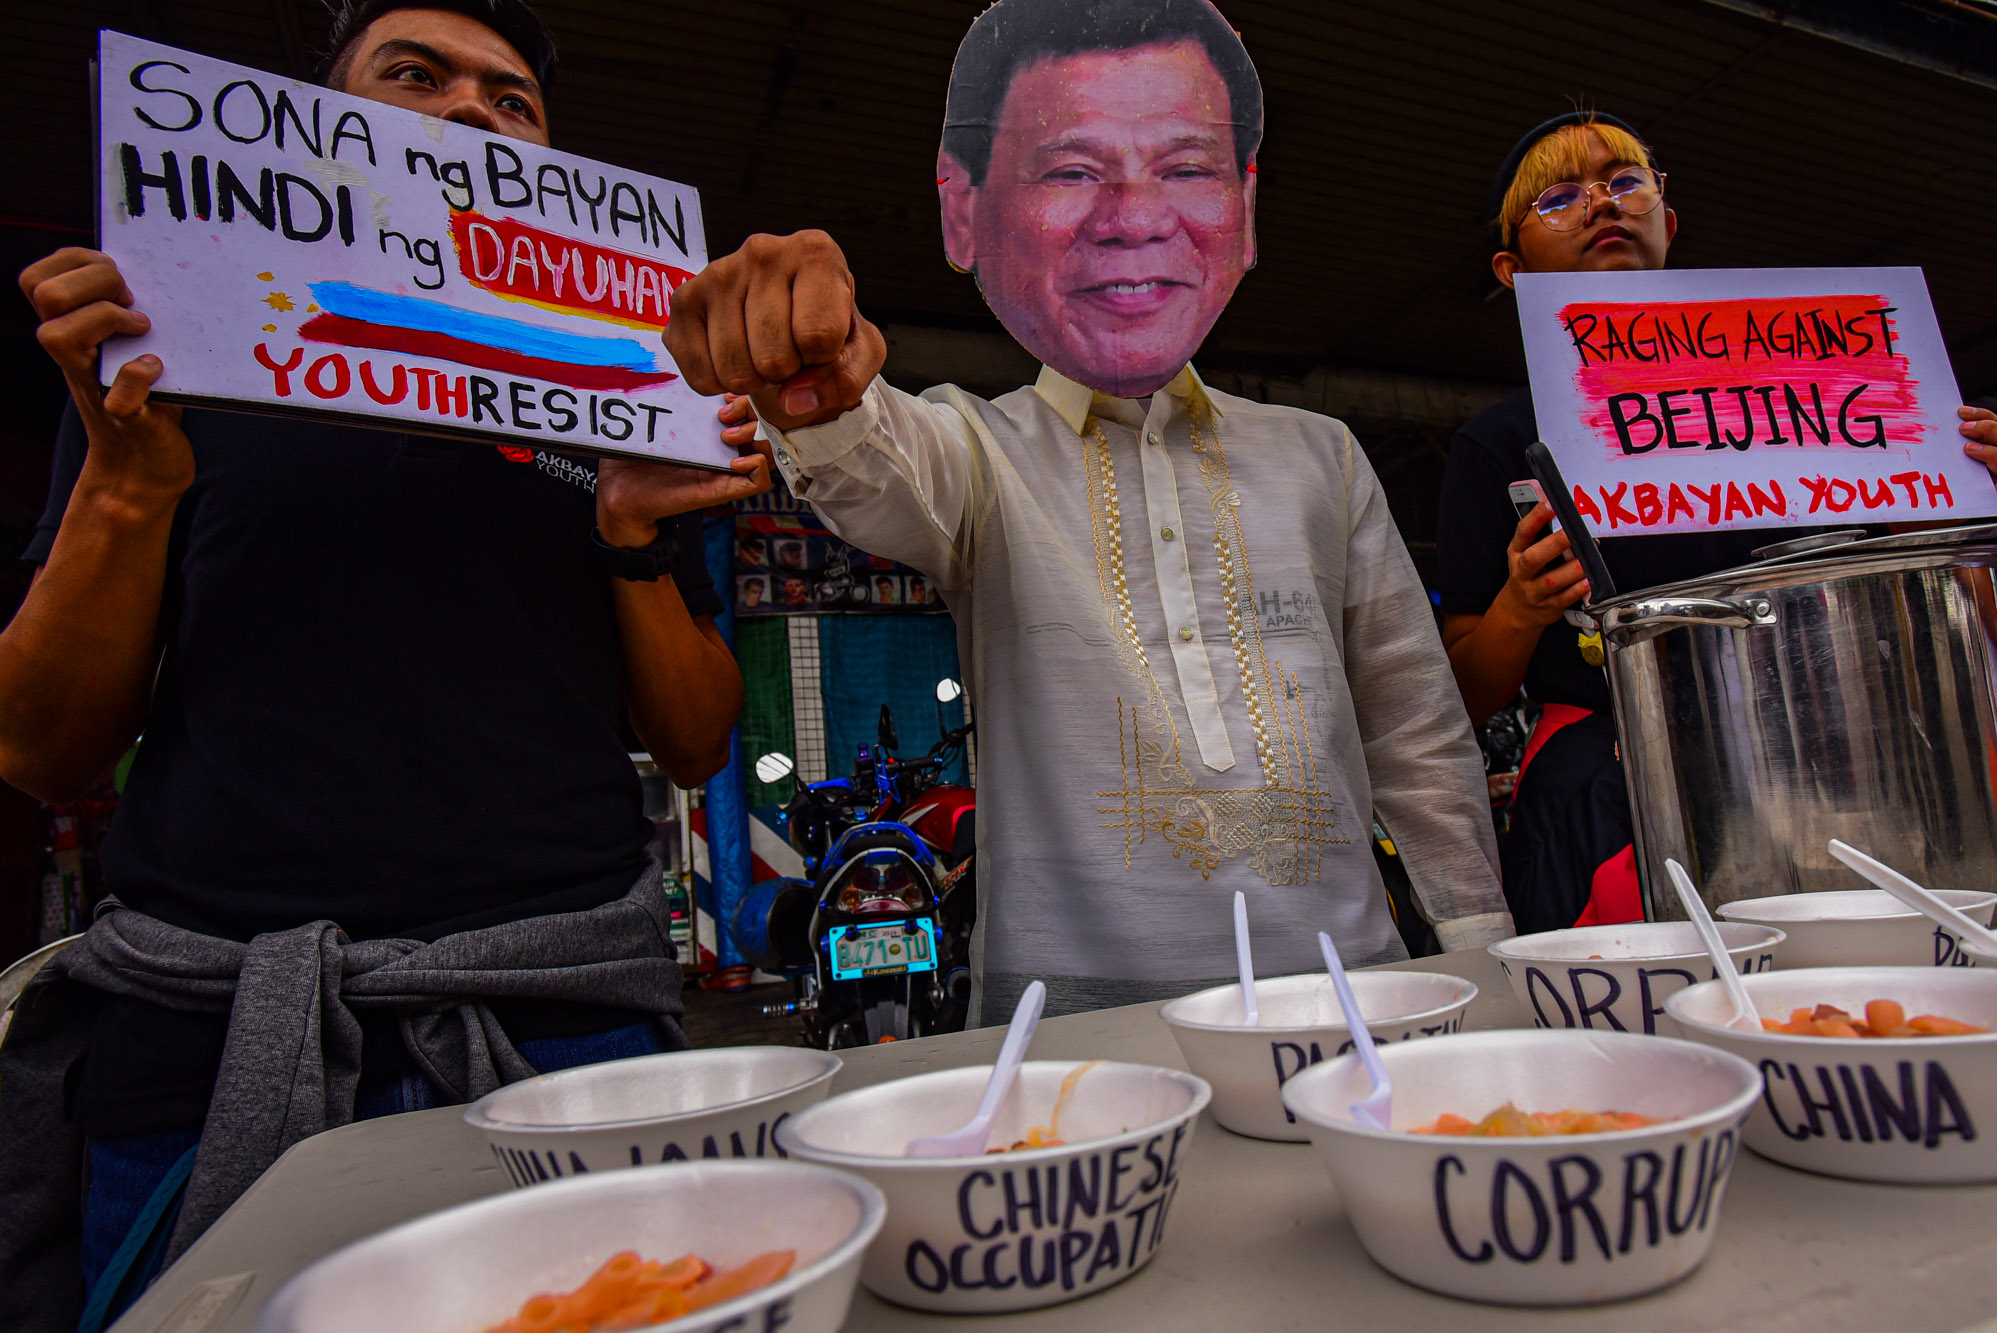 PRIORITIES. In an alternative SONA activity called SOPAS: State of the Province of China Address, a man wearing a Duterte mask gives out soup bowls labeled with Duterte's failed promises and twisted priorities. Photo by Maria Tan/Rappler